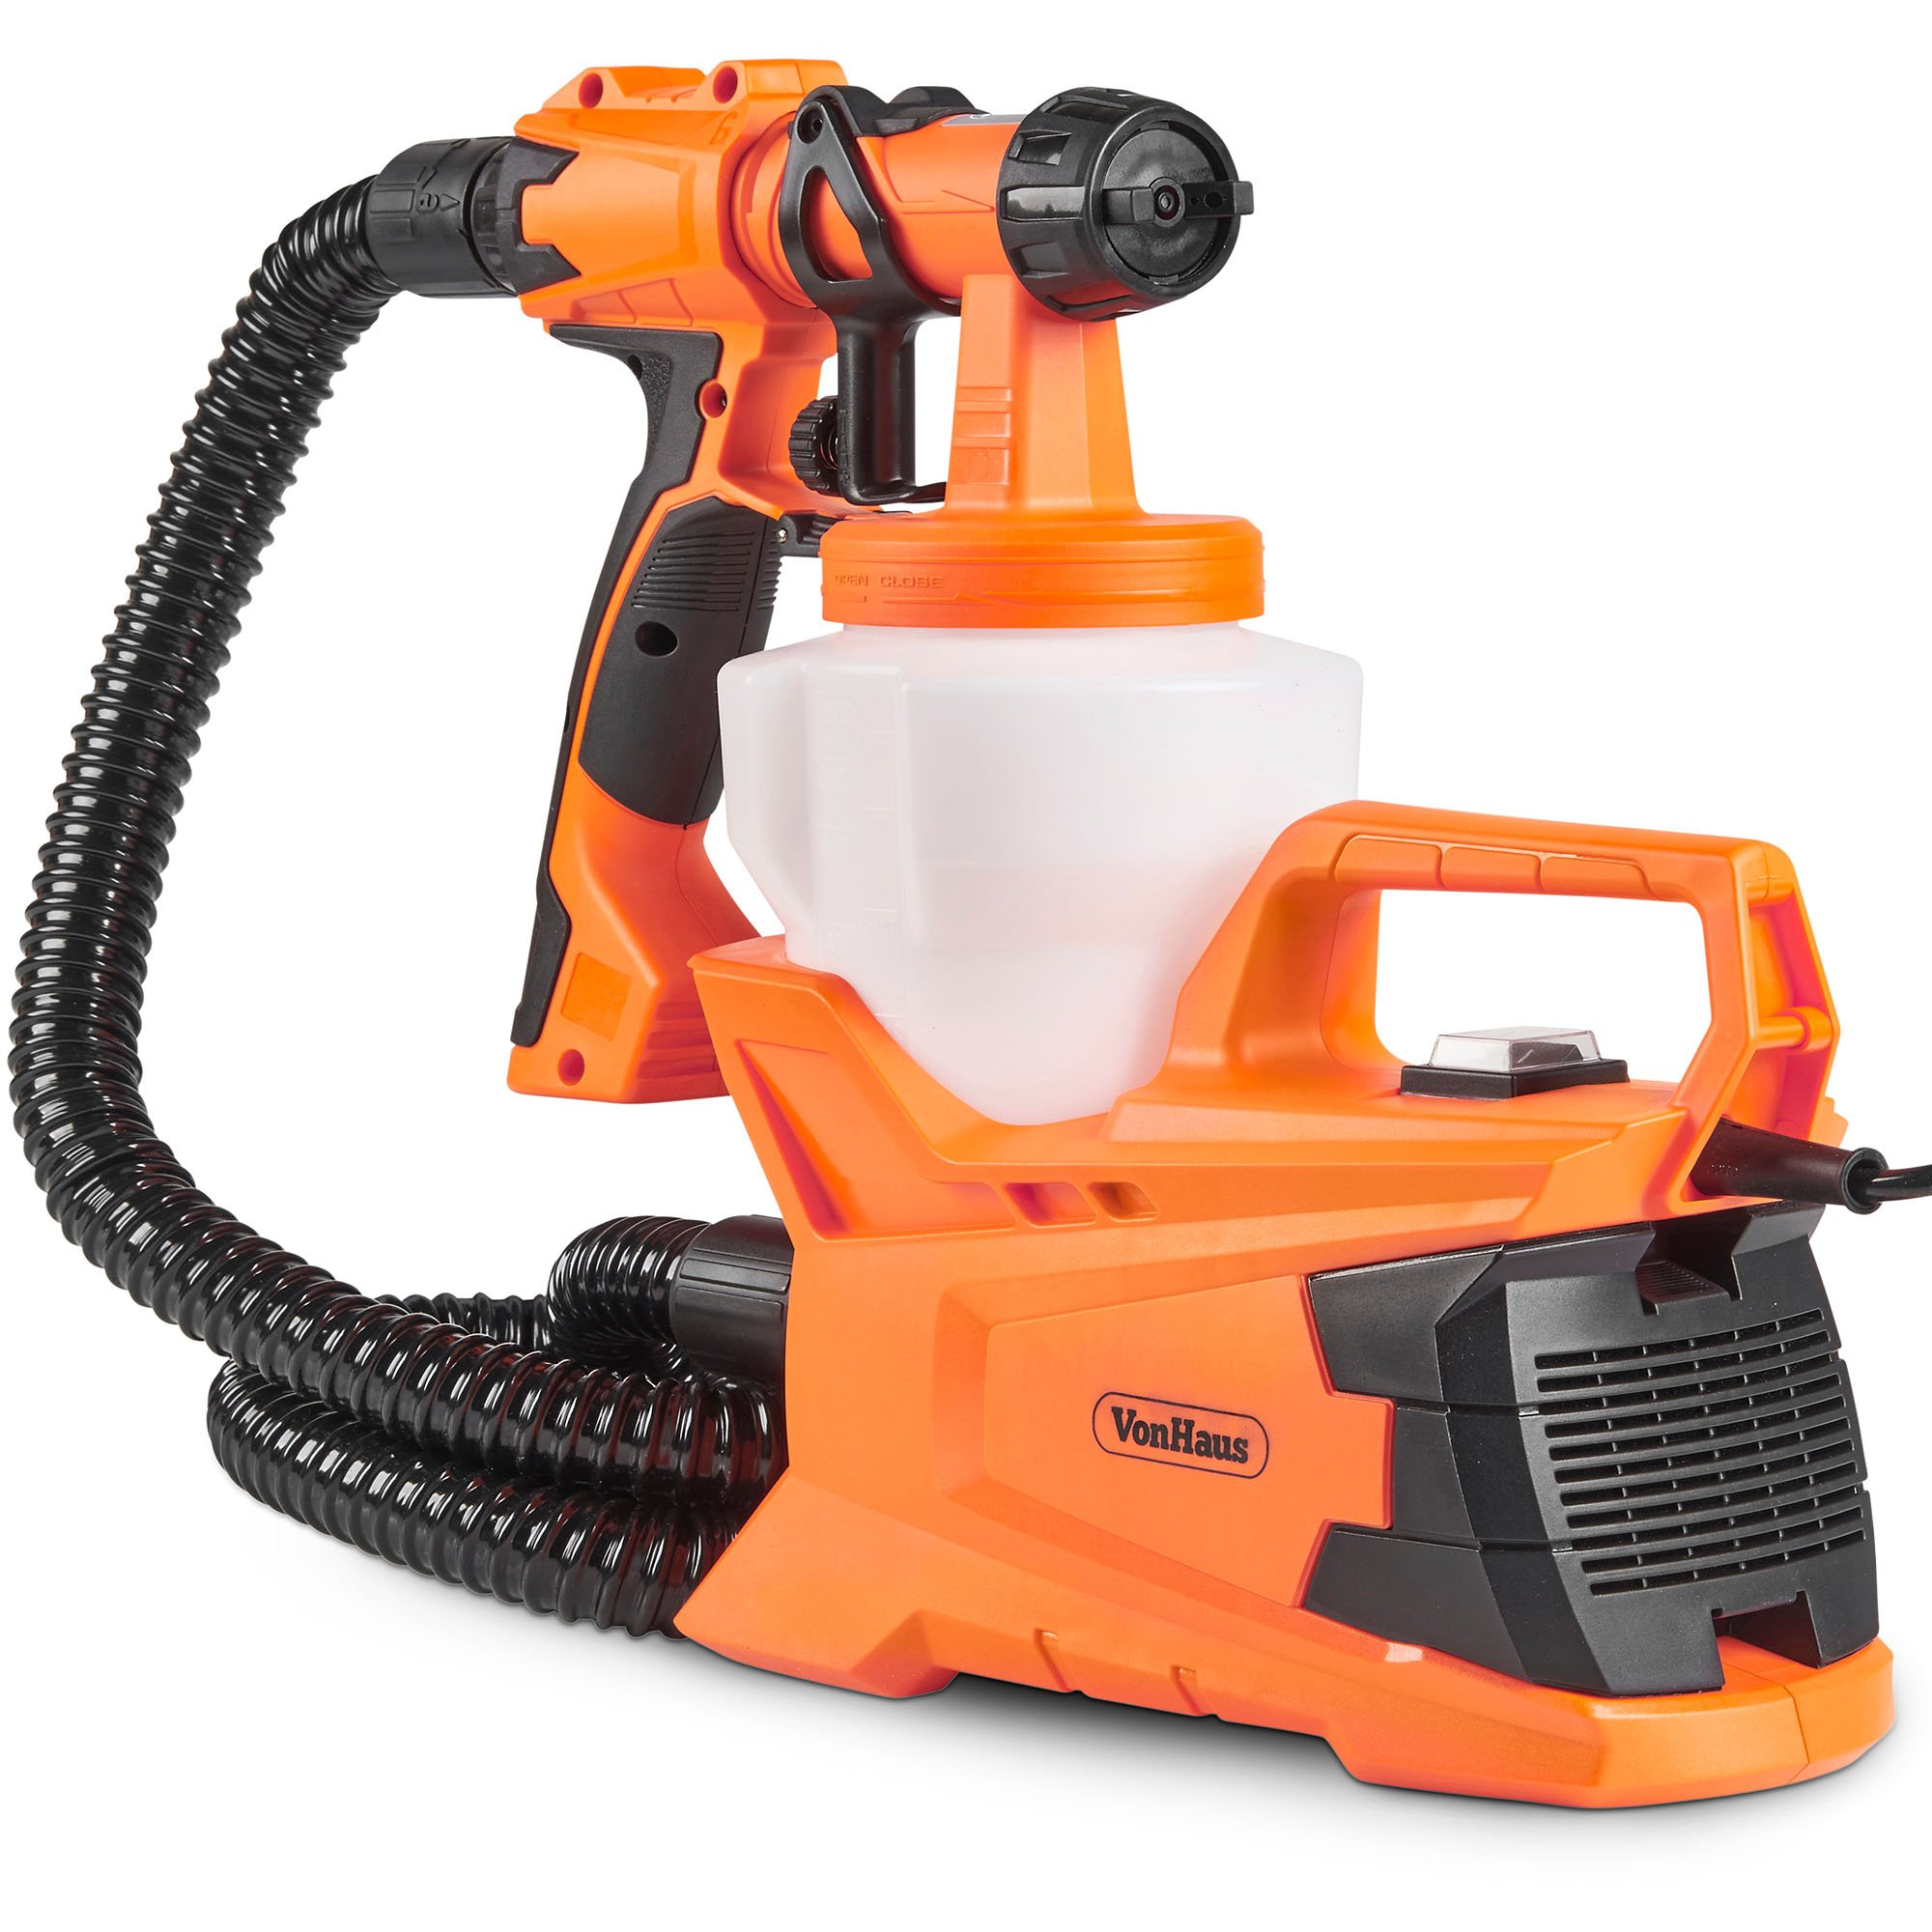 VonHaus 6.5Amp Electric HVLP Spray Gun Power Paint Sprayer with 3 Adjustable Spray Patterns, Flow Control for Home and Outdoor Use